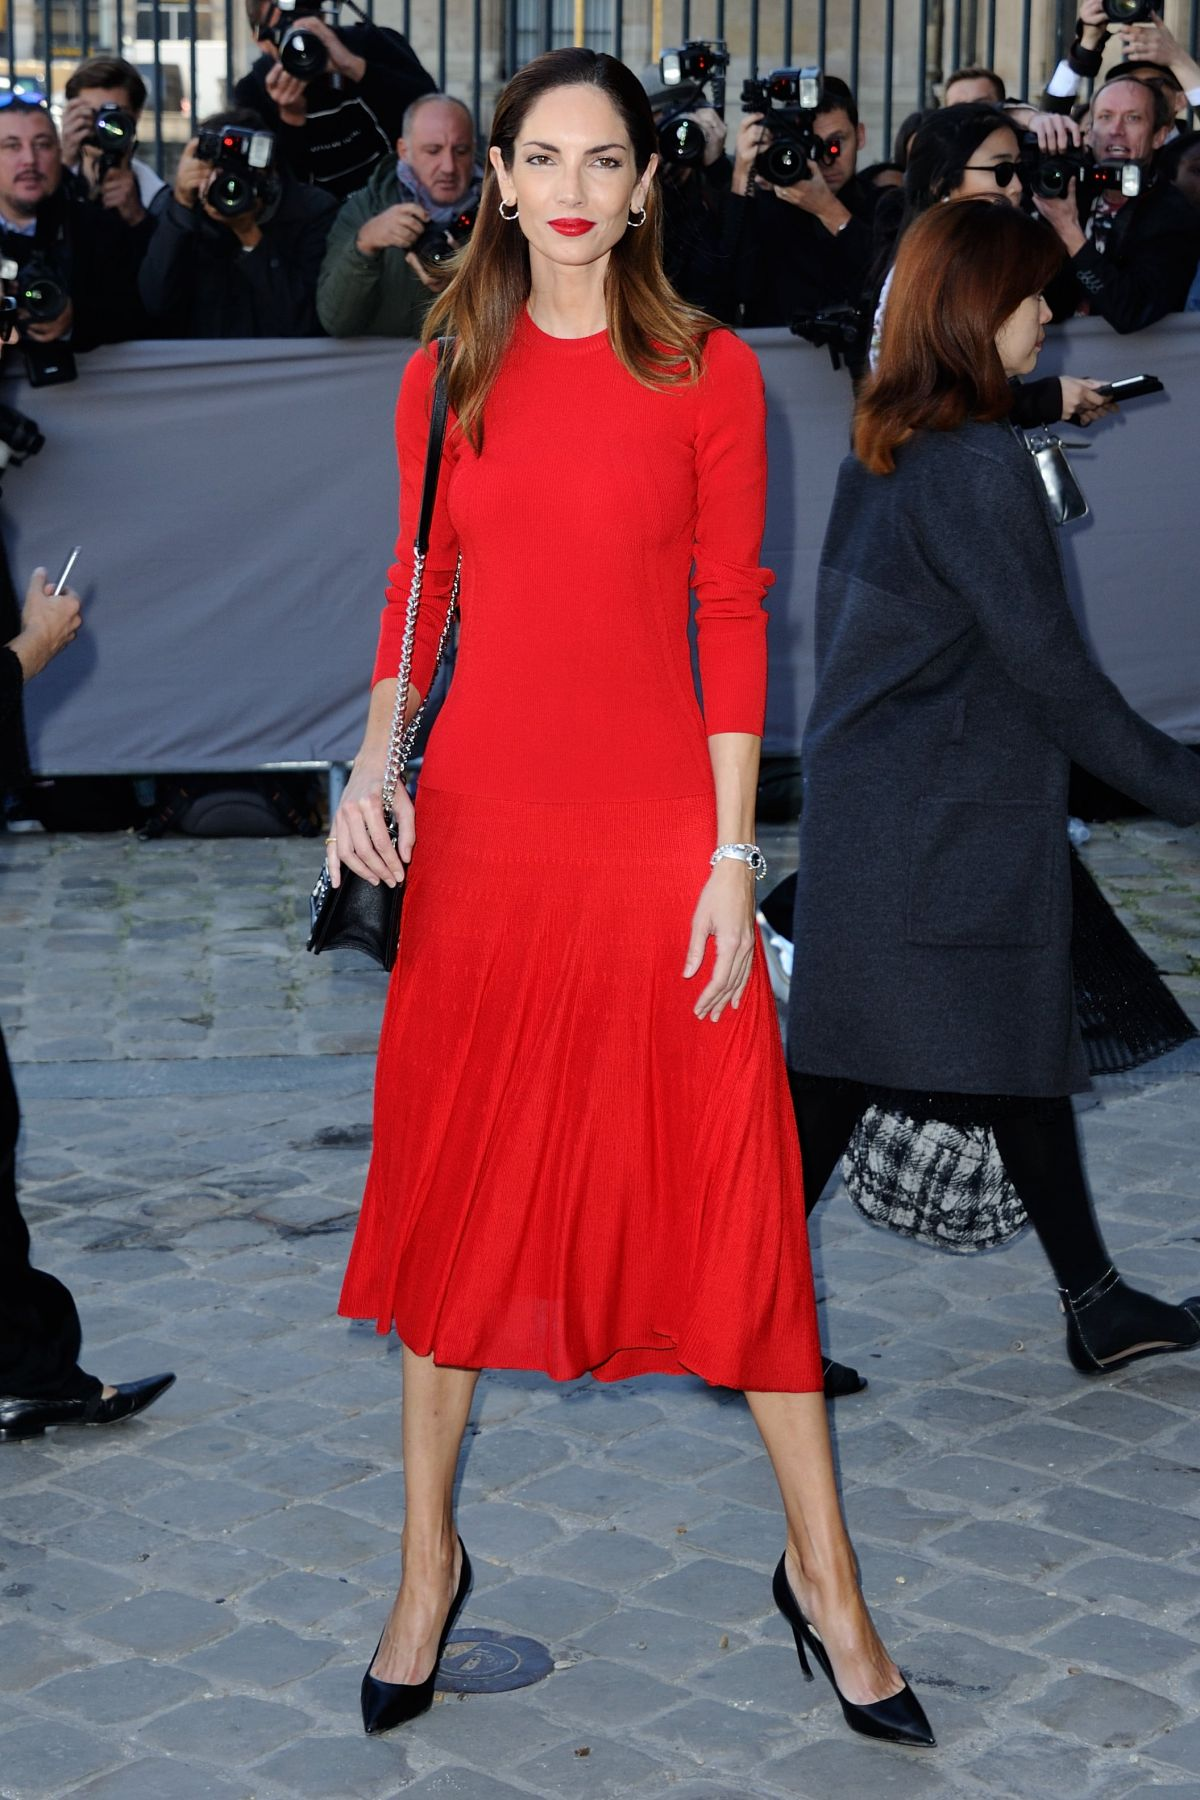 EUGENIA SILVA at Christian Dior Fashion Show in Paris 10/02/2015